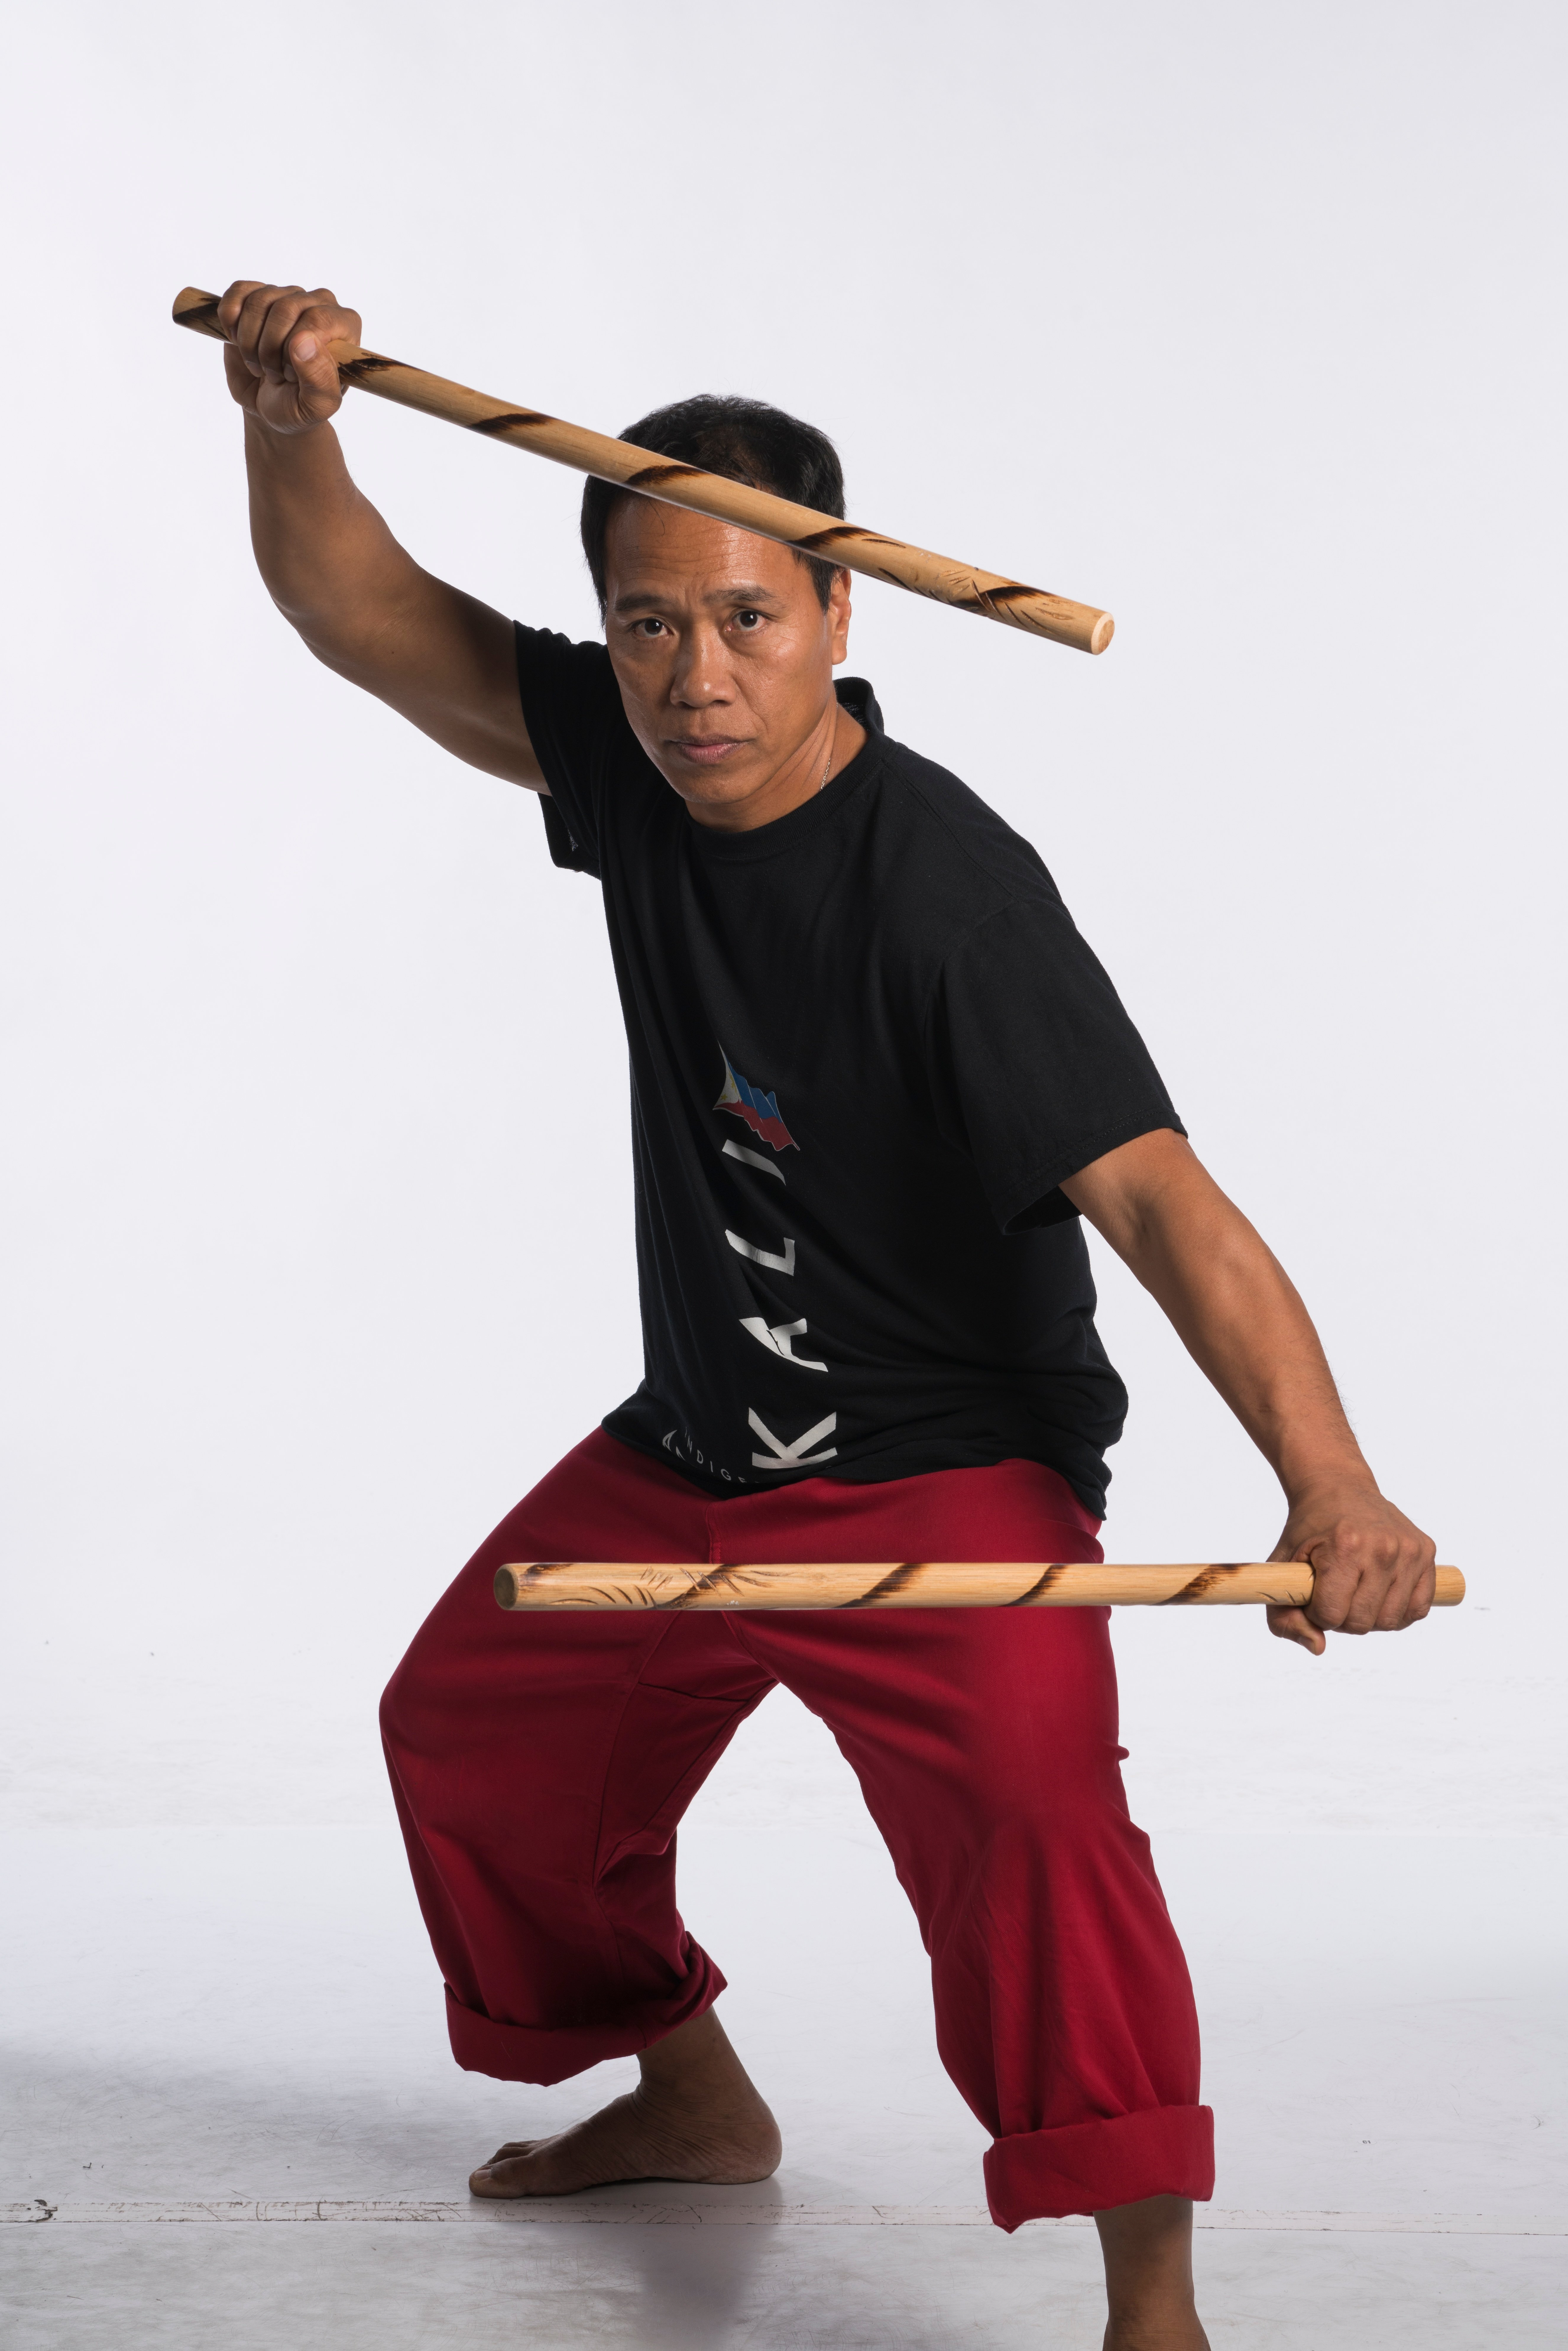 Kali master Apolo Ladra demonstrates a form used in the weapons art.